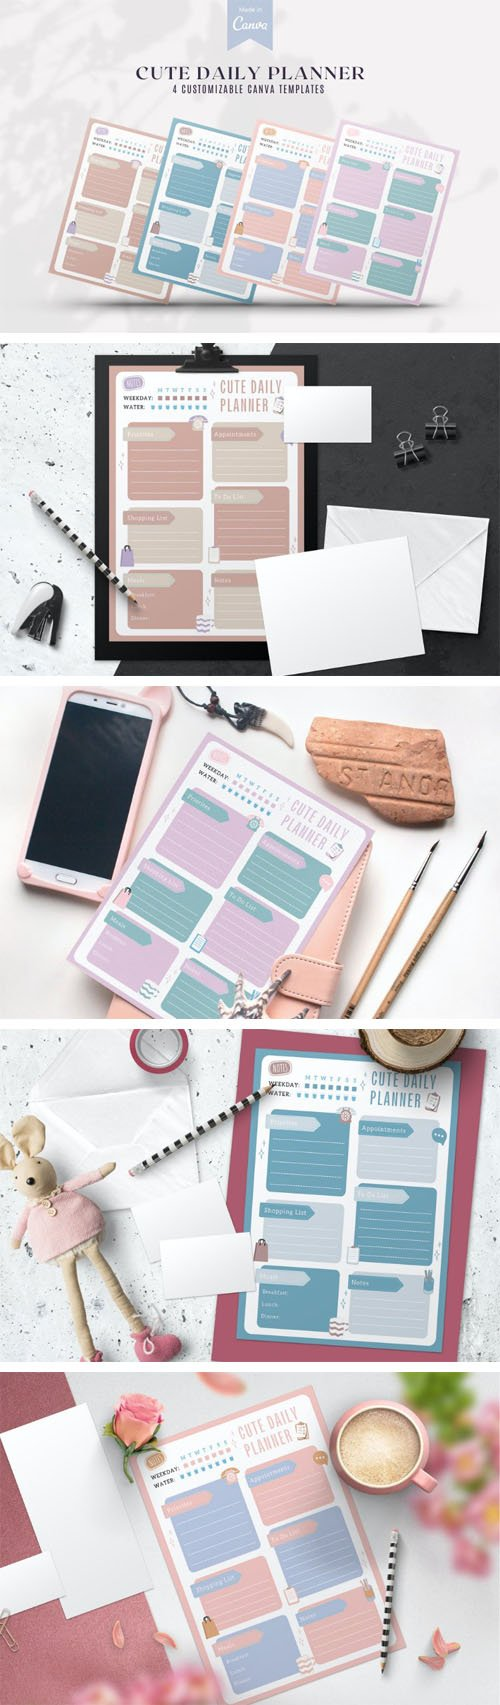 Cute Daily Planner - 4 Customizable Canva PDF Templates